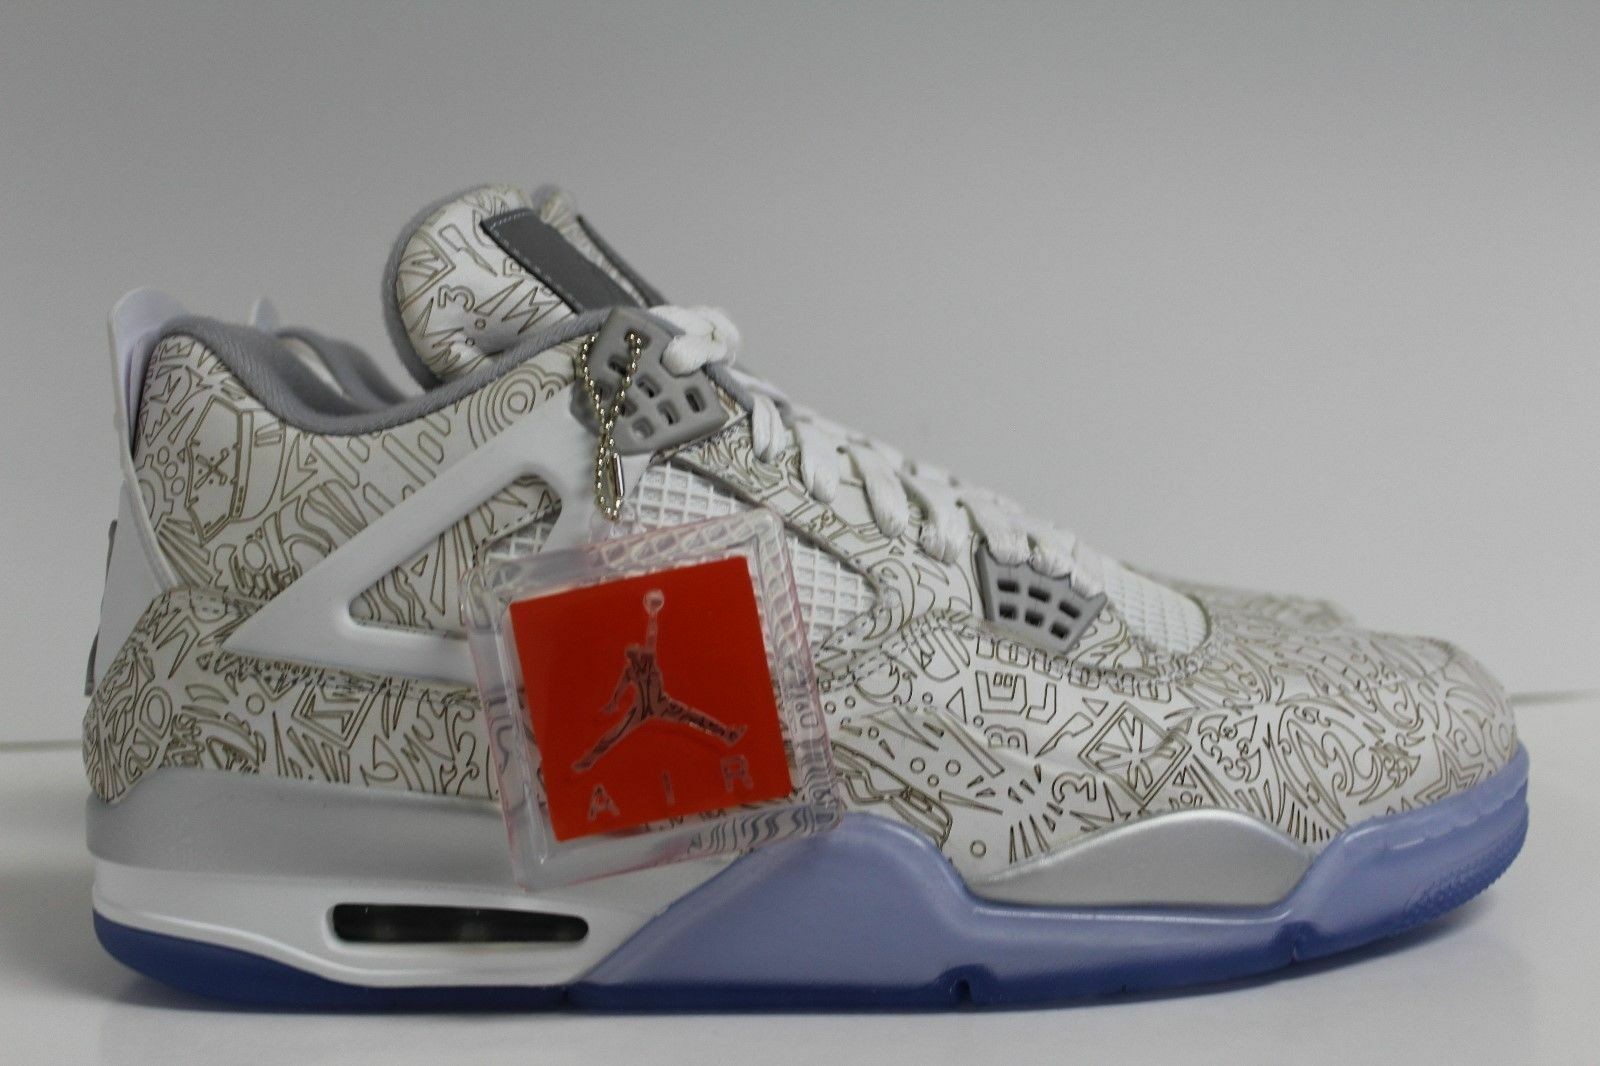 Nike Air Jordan 4 Retro Laser 705333-105 White/Chrome-Metallic Silver - Size 10